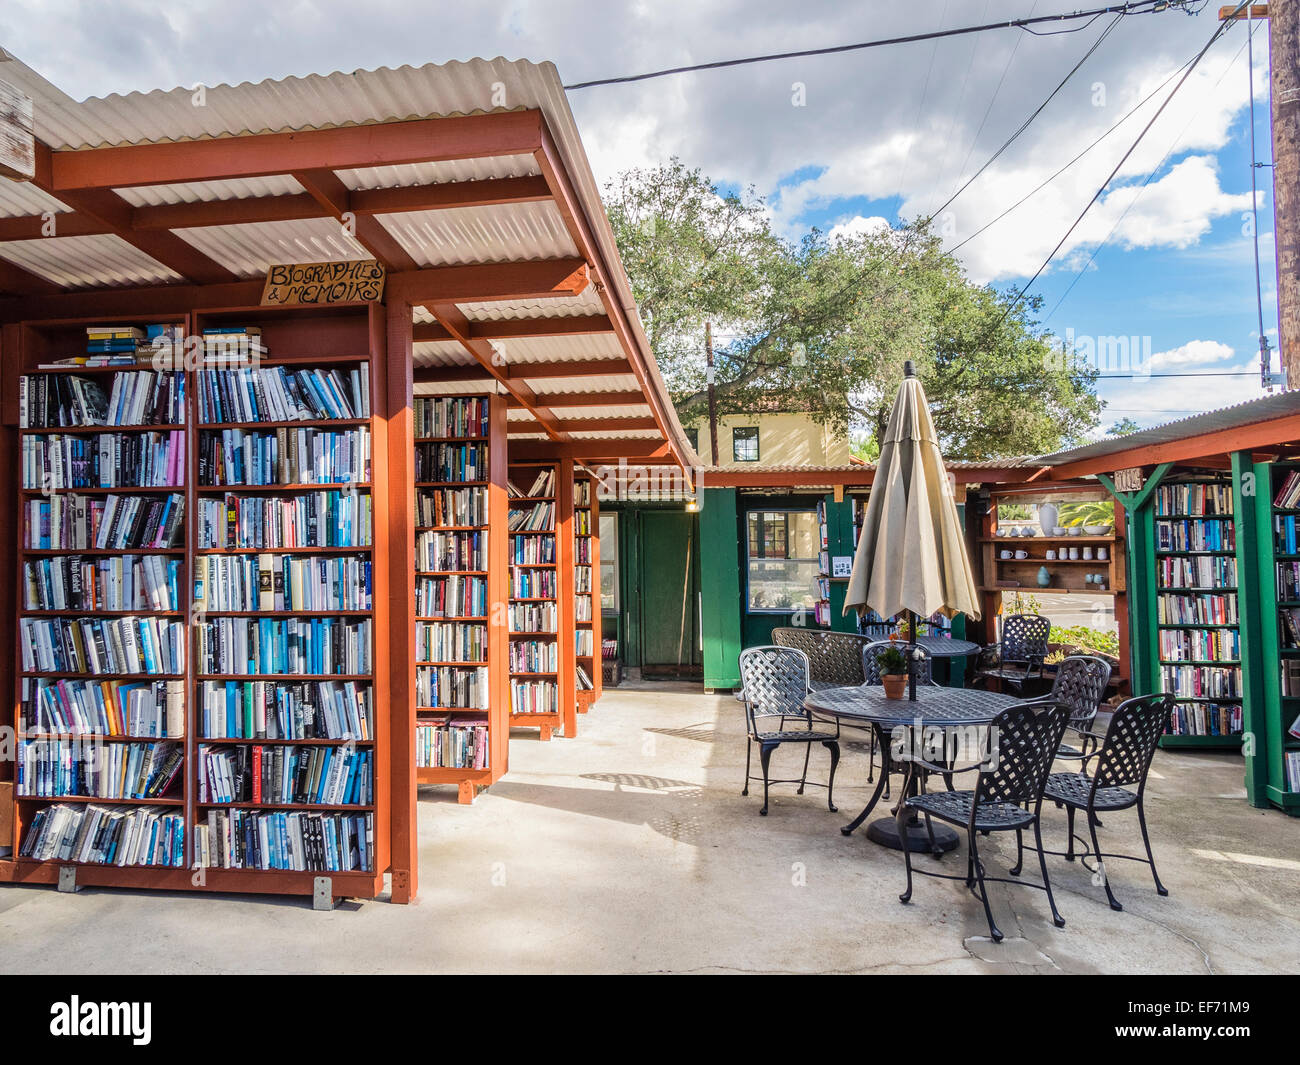 A view of the unusual outside bookshelves at Bart's Books, Ojai, California, USA. - Stock Image